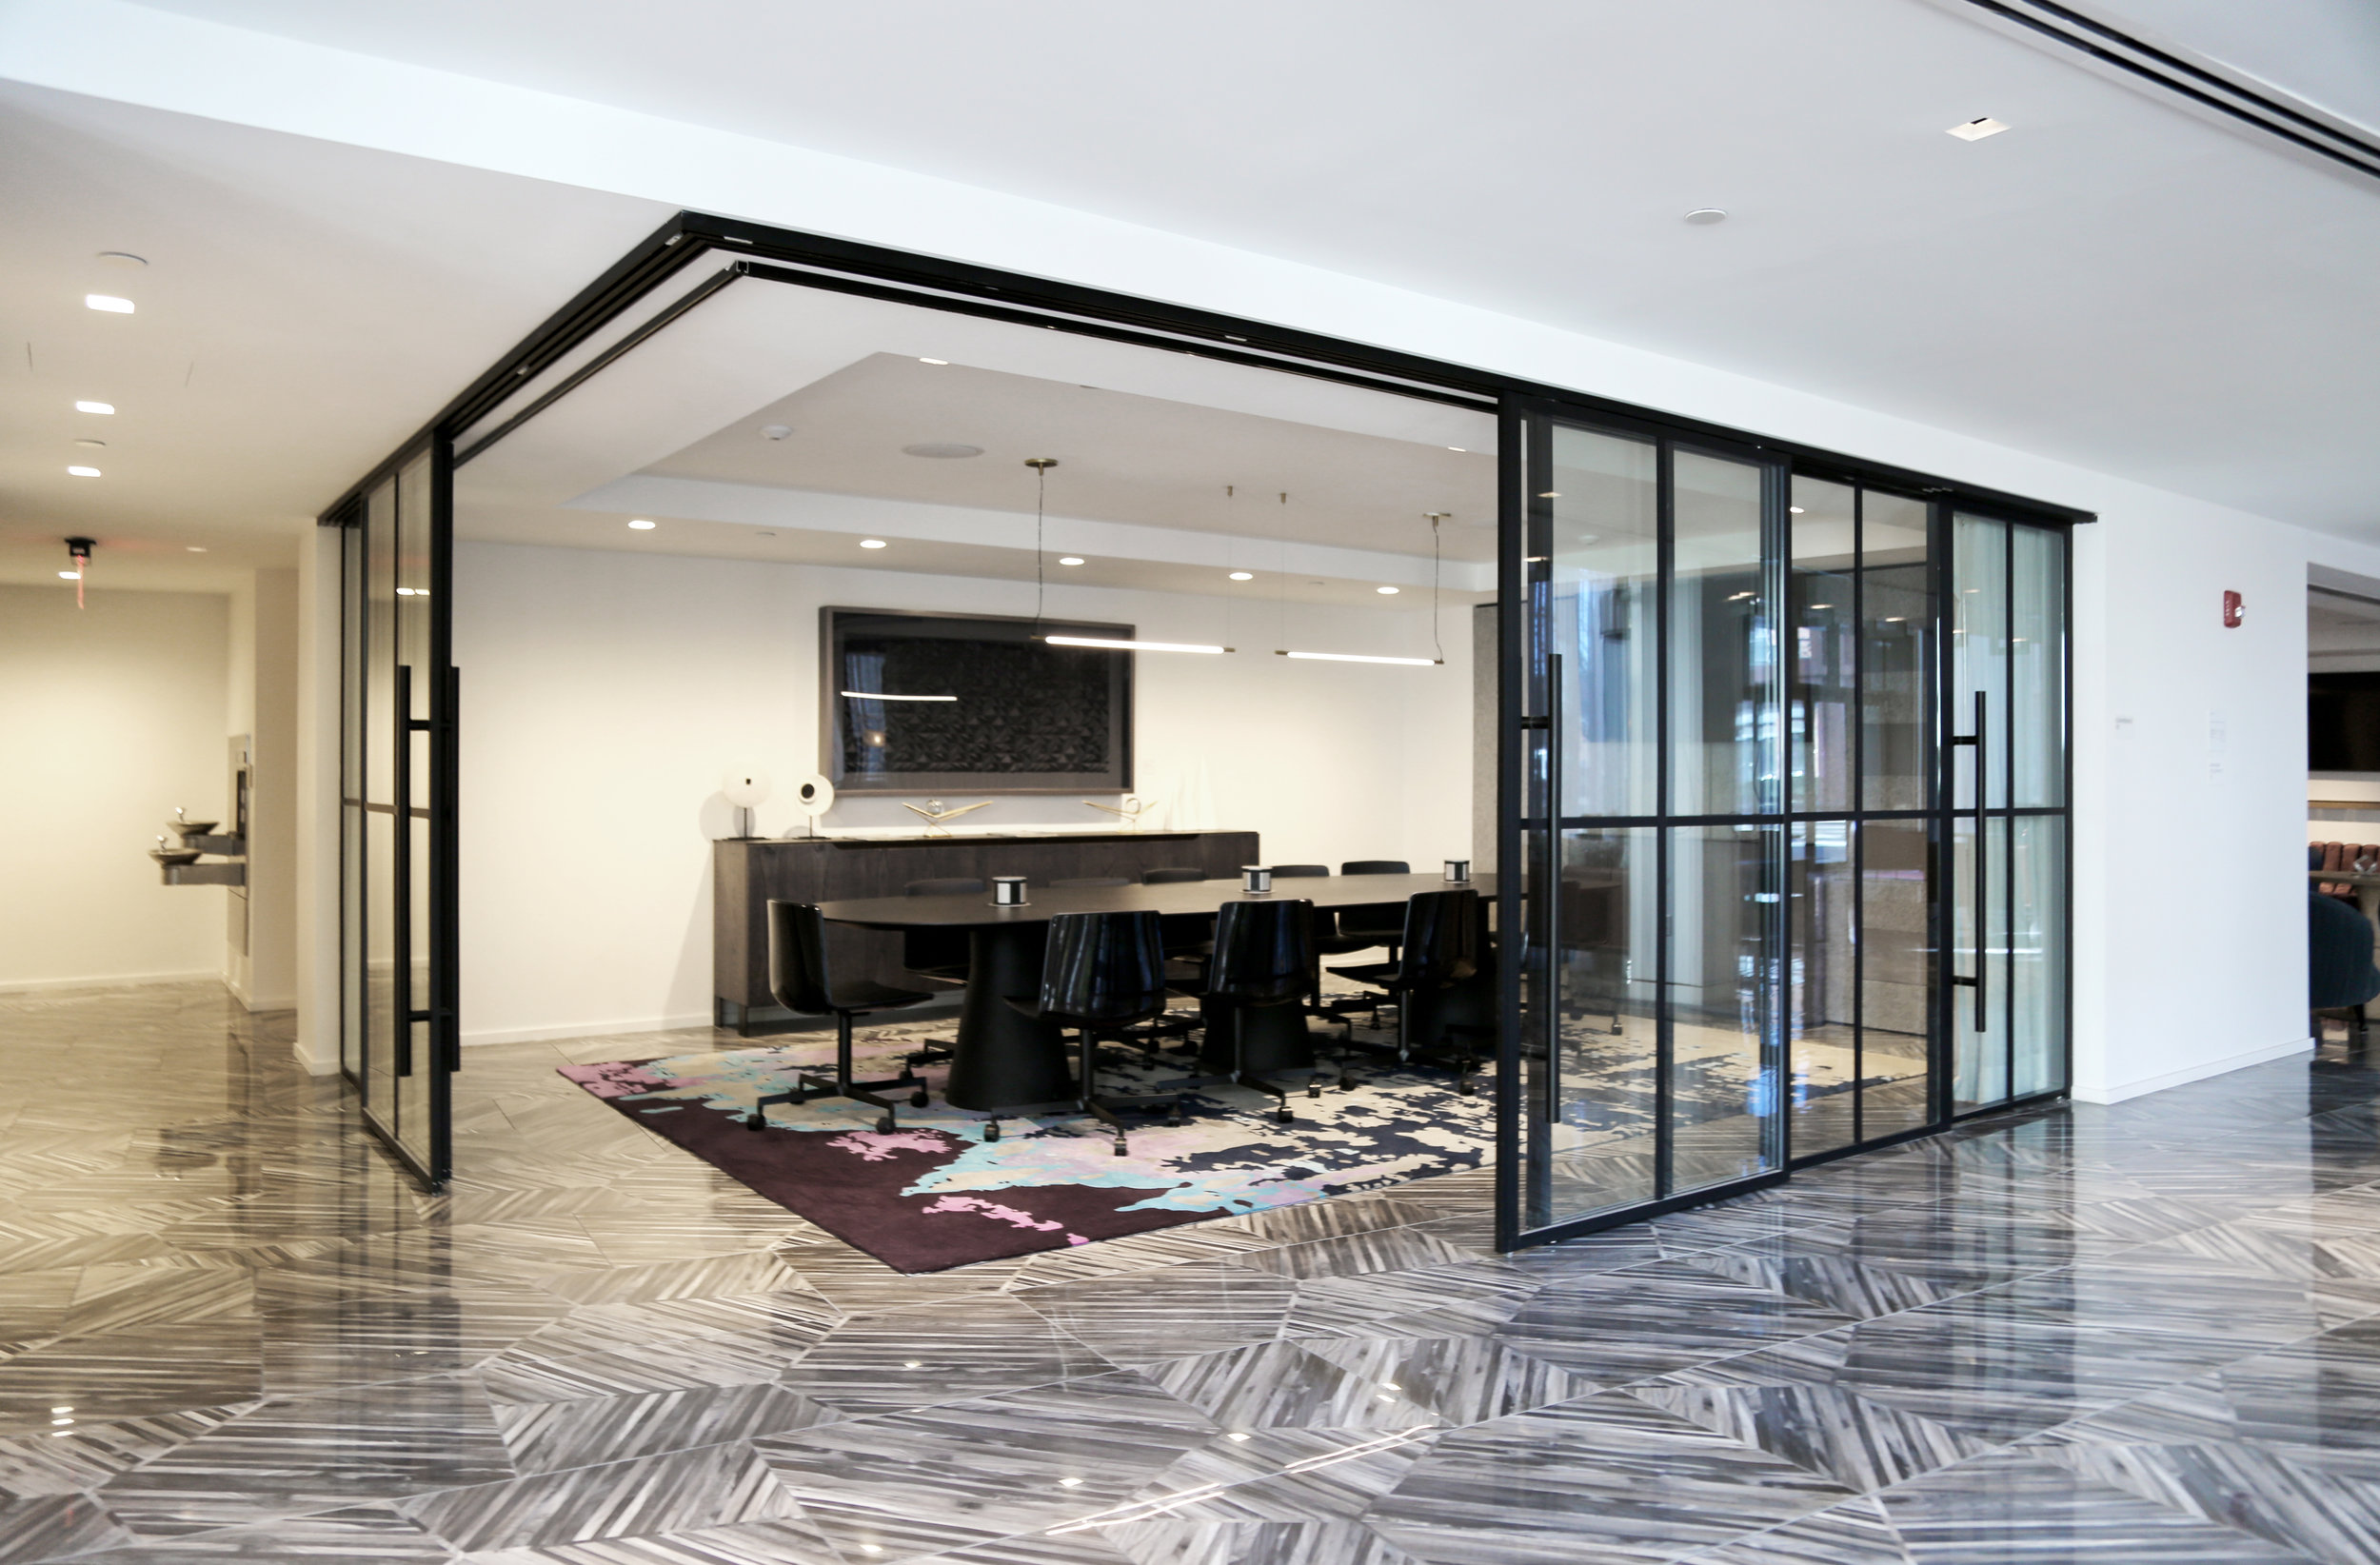 Modernus Telescoping Perpendicular Glass Wall Conference Room Open - Spaceworks AI.jpg